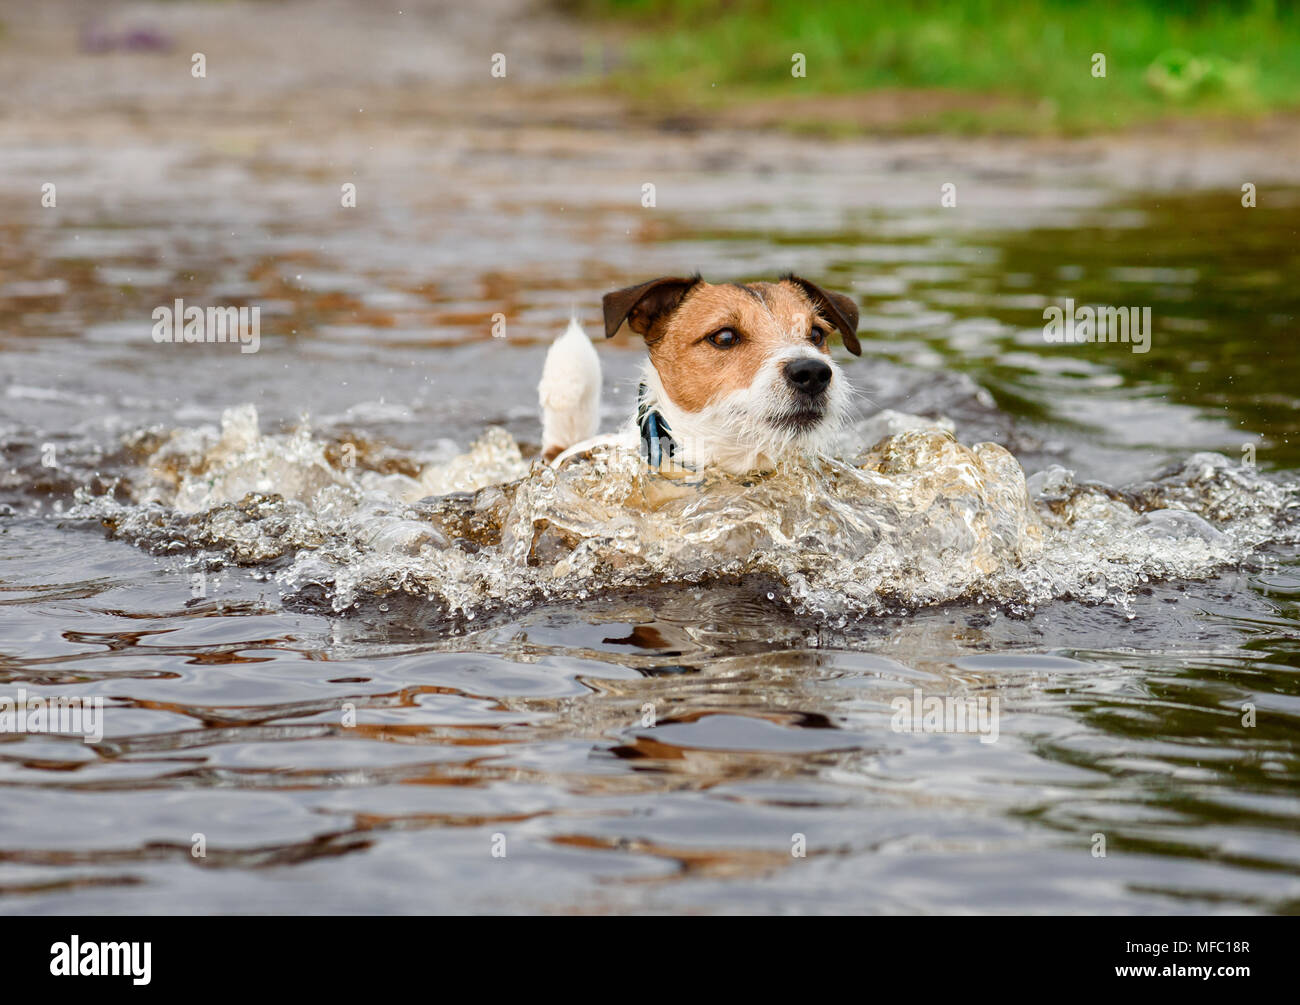 Dog wading in water cooling down at hot summer day - Stock Image